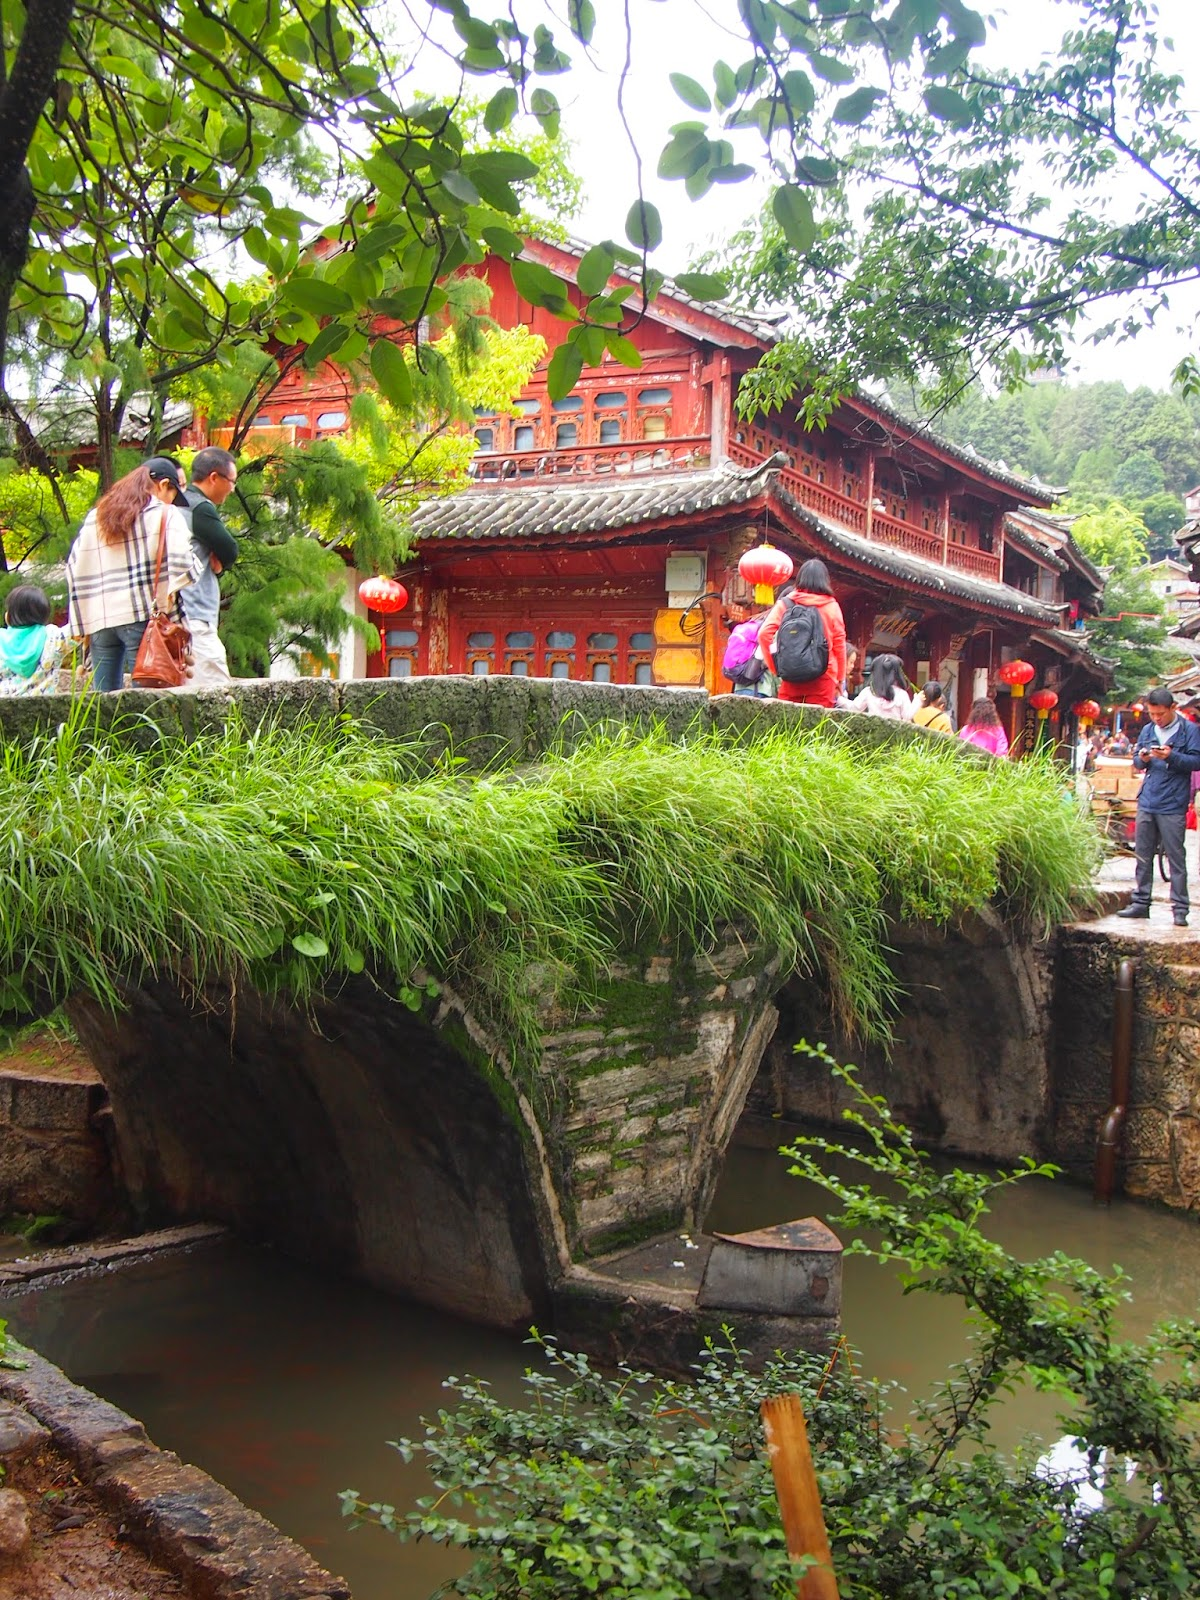 Canals and rives in Lijiang Old Town